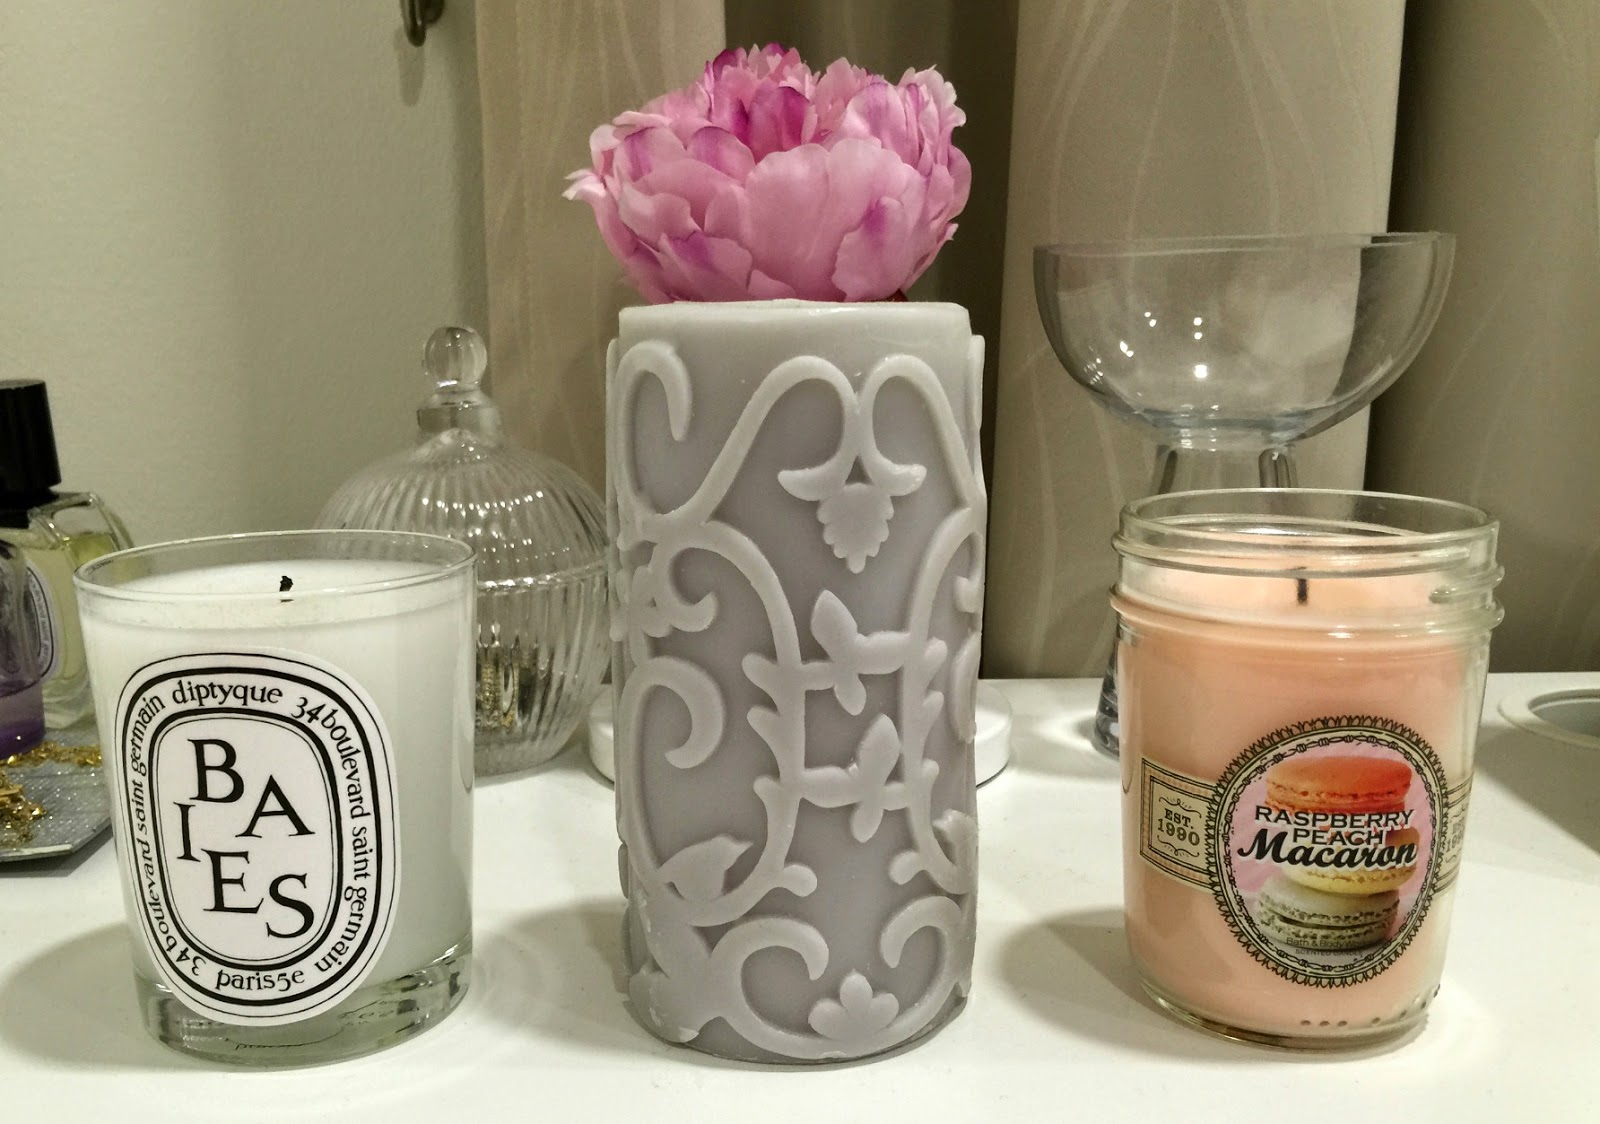 My Current Favorite Home Candles